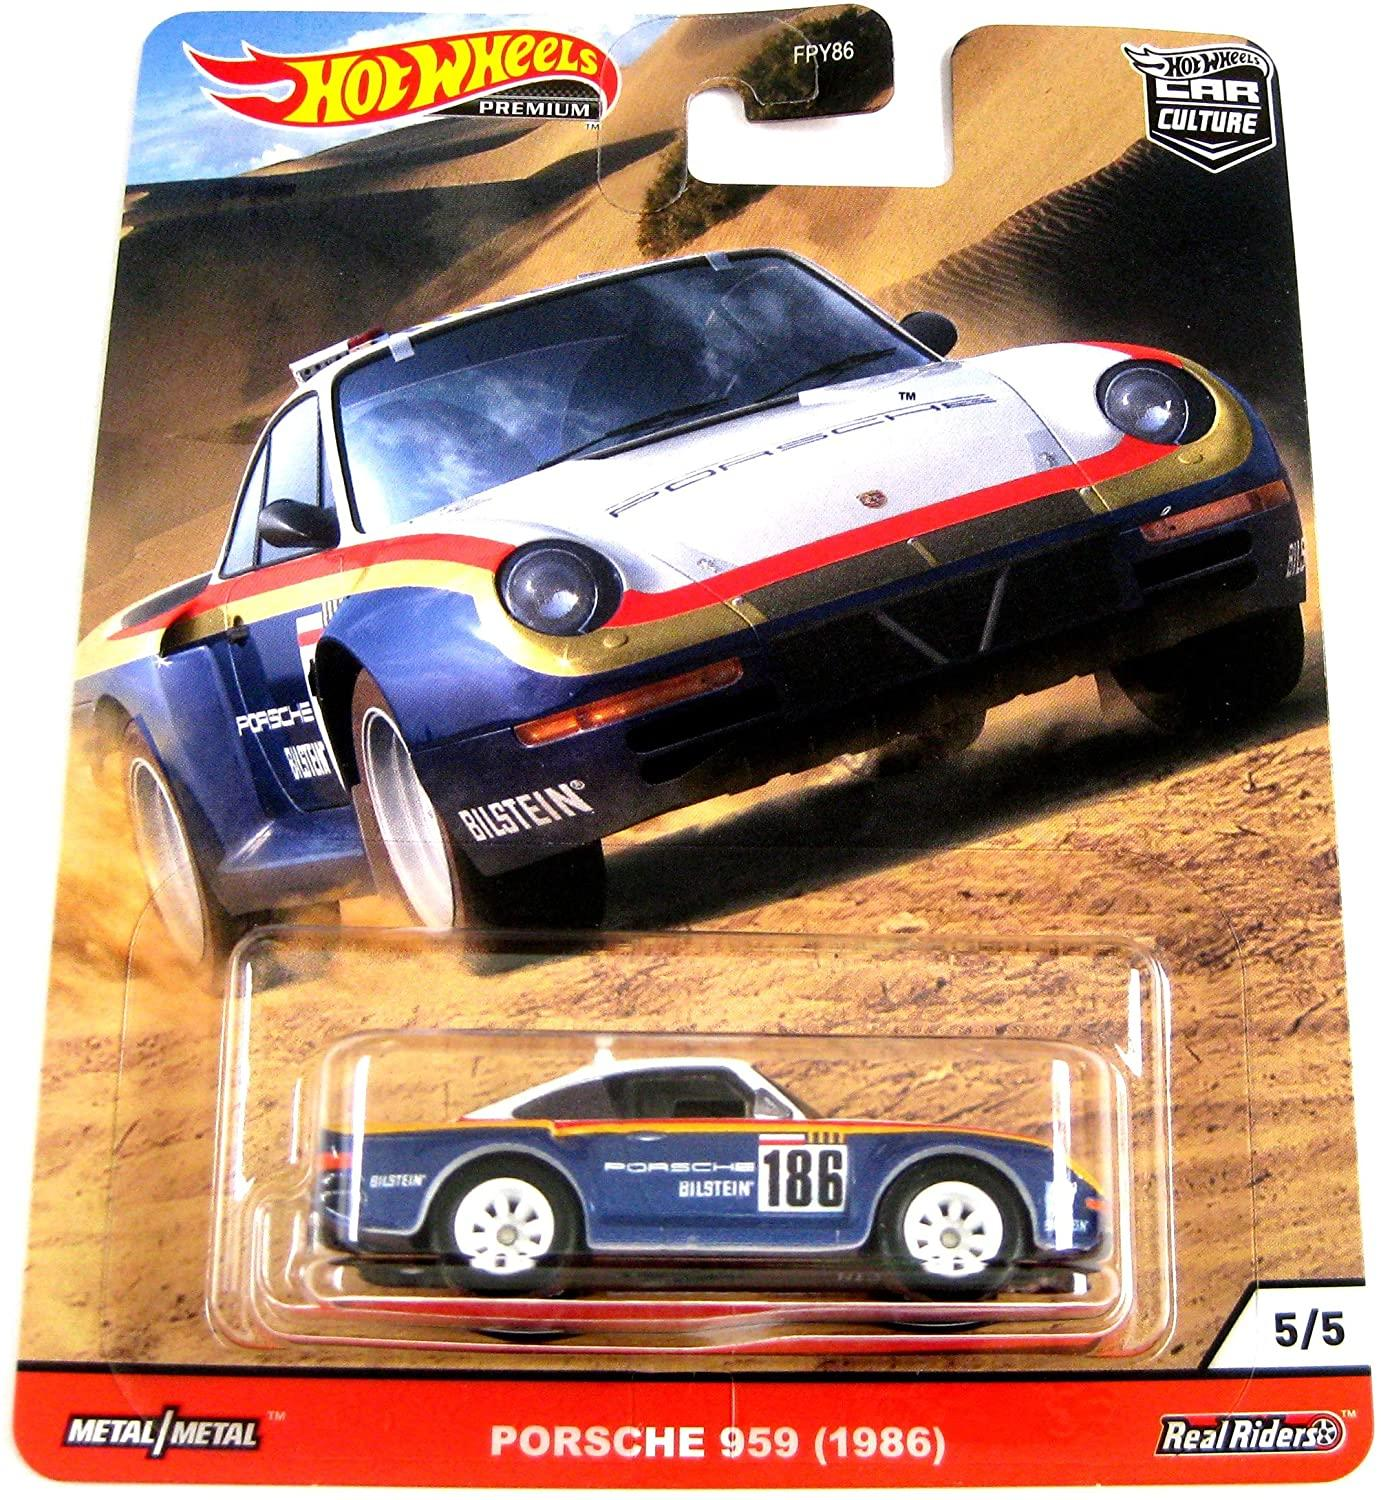 Hot Wheels Car Culture Wild Terrain Real Riders Porsche 959 (1986) (GJP87/FPY86)